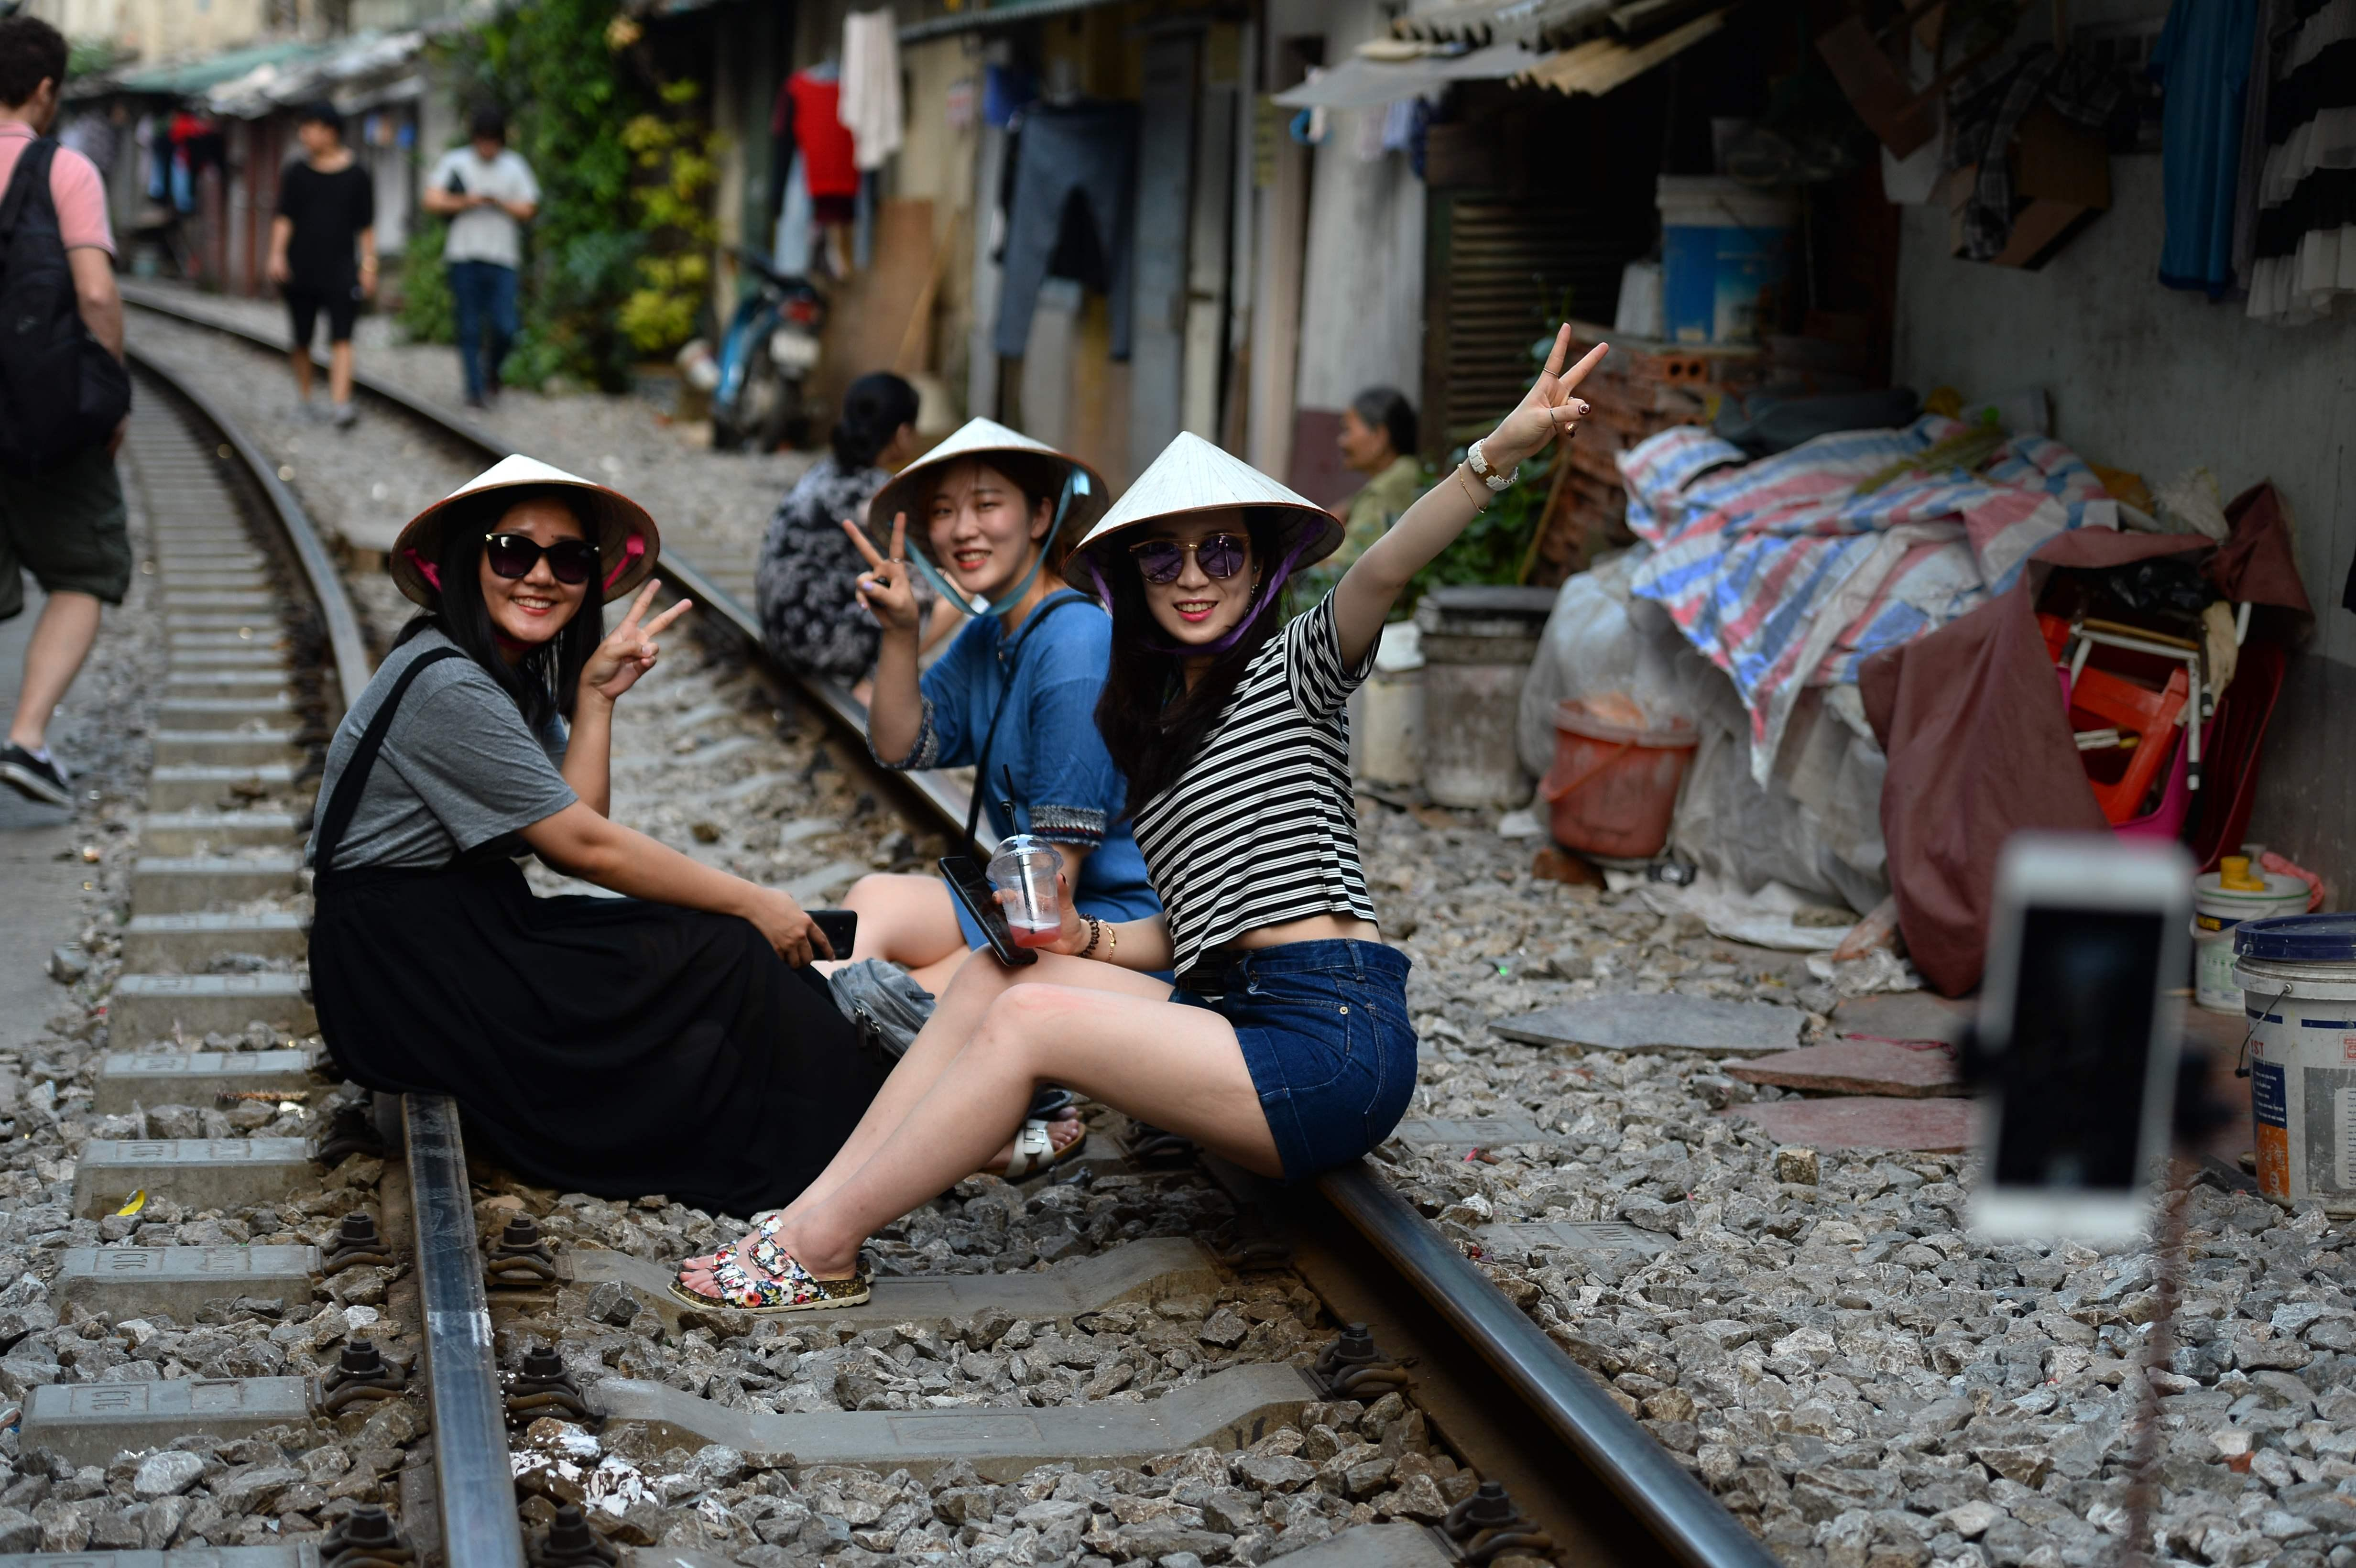 The city streets of Hanoi will have some brand new tracks ready for 2020